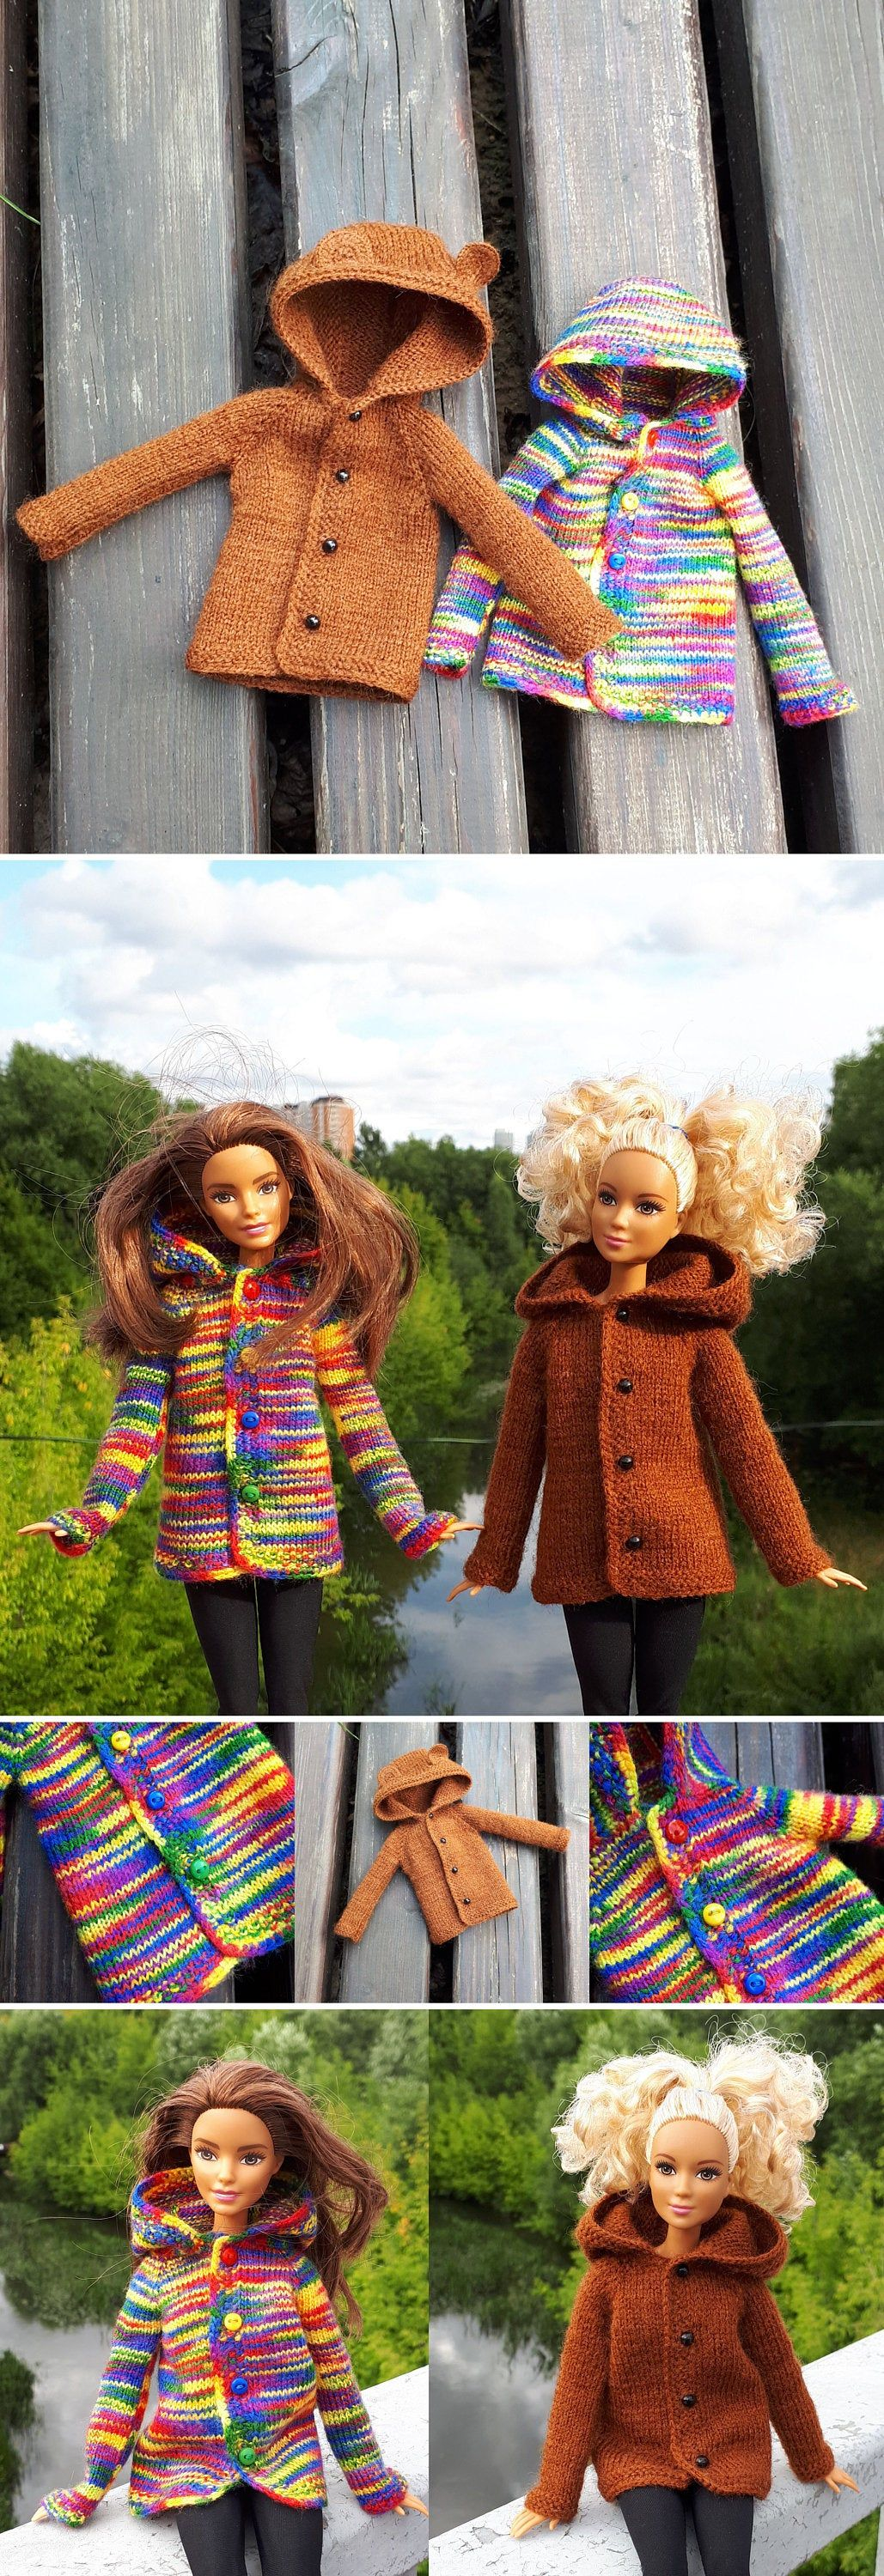 Knitted raibow cardigan for Barbie doll Barbie fashion clothes Knitted sweatshirt sweater Barbie clothes pullover Barbie cardigan sweater #crochetedbarbiedollclothes